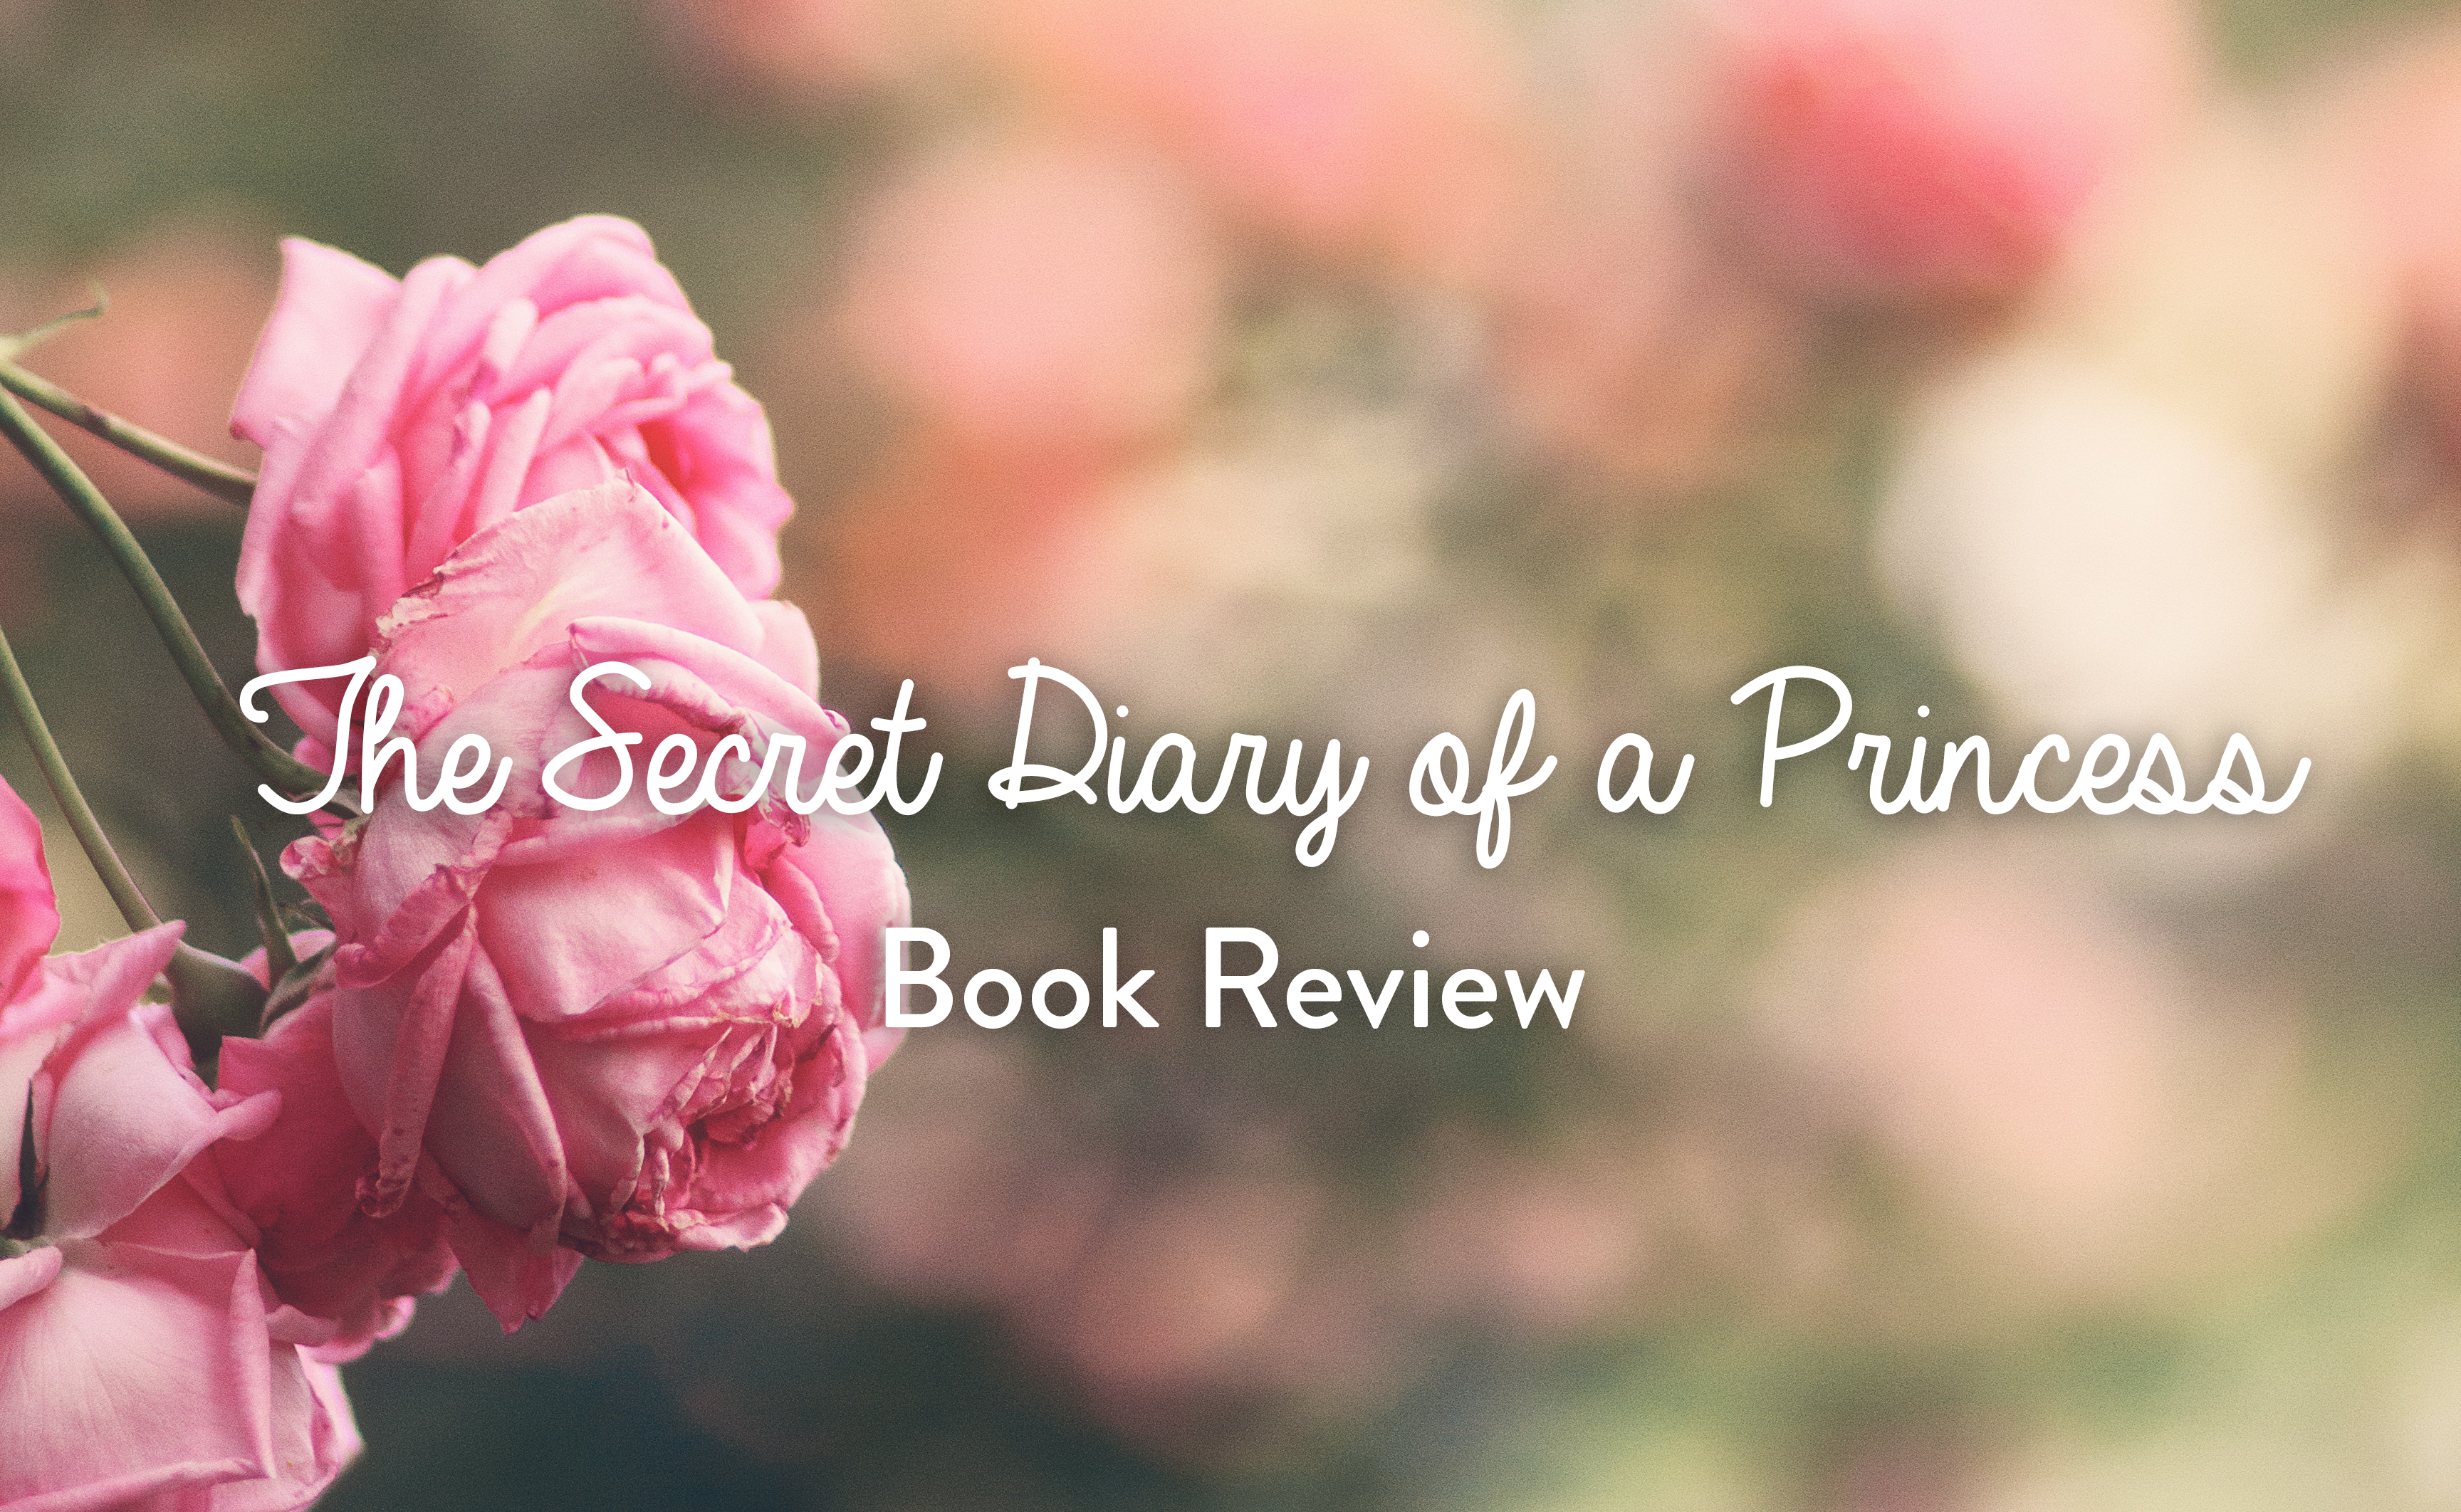 Book review: The Secret Diary of a Princess